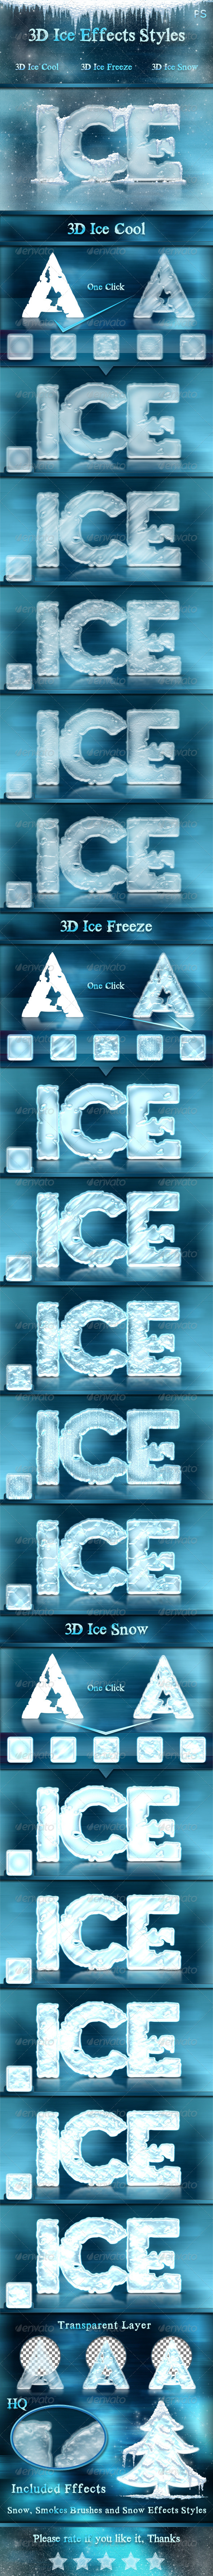 3d ice cool freeze snow effects styles styles photoshop 3d ice cool freeze snow effects styles photoshop fontsphotoshop text baditri Images